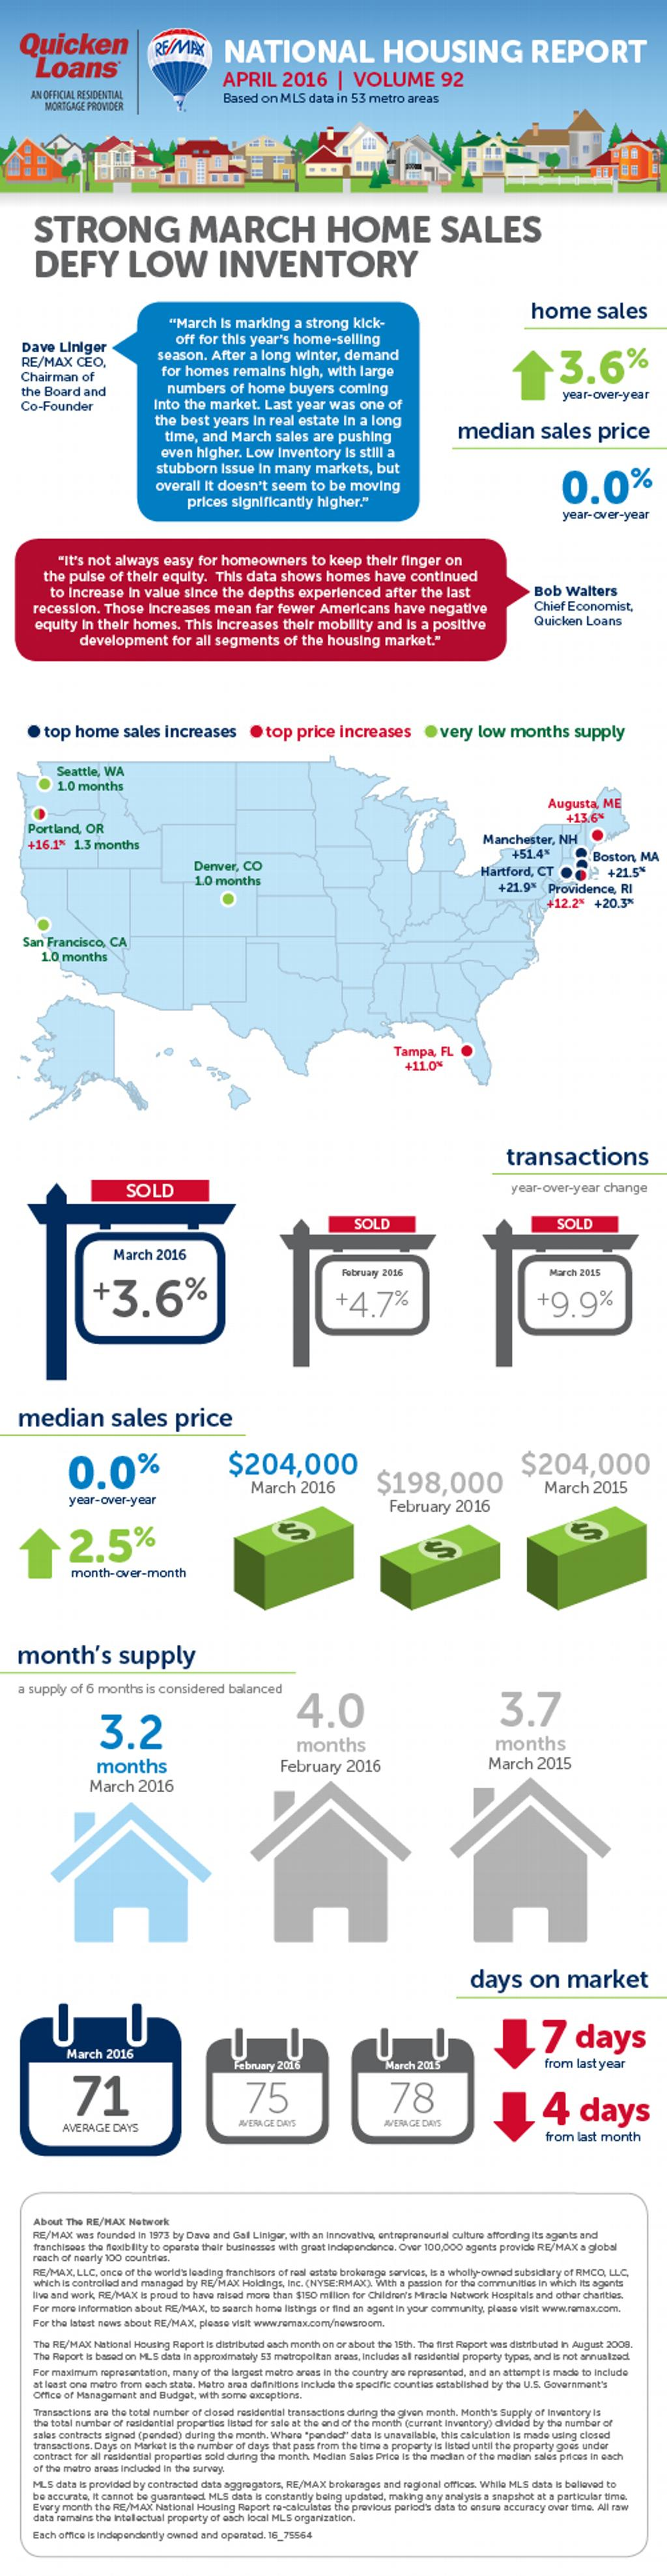 April 2016 National Housing Report RE/MAX Newsroom